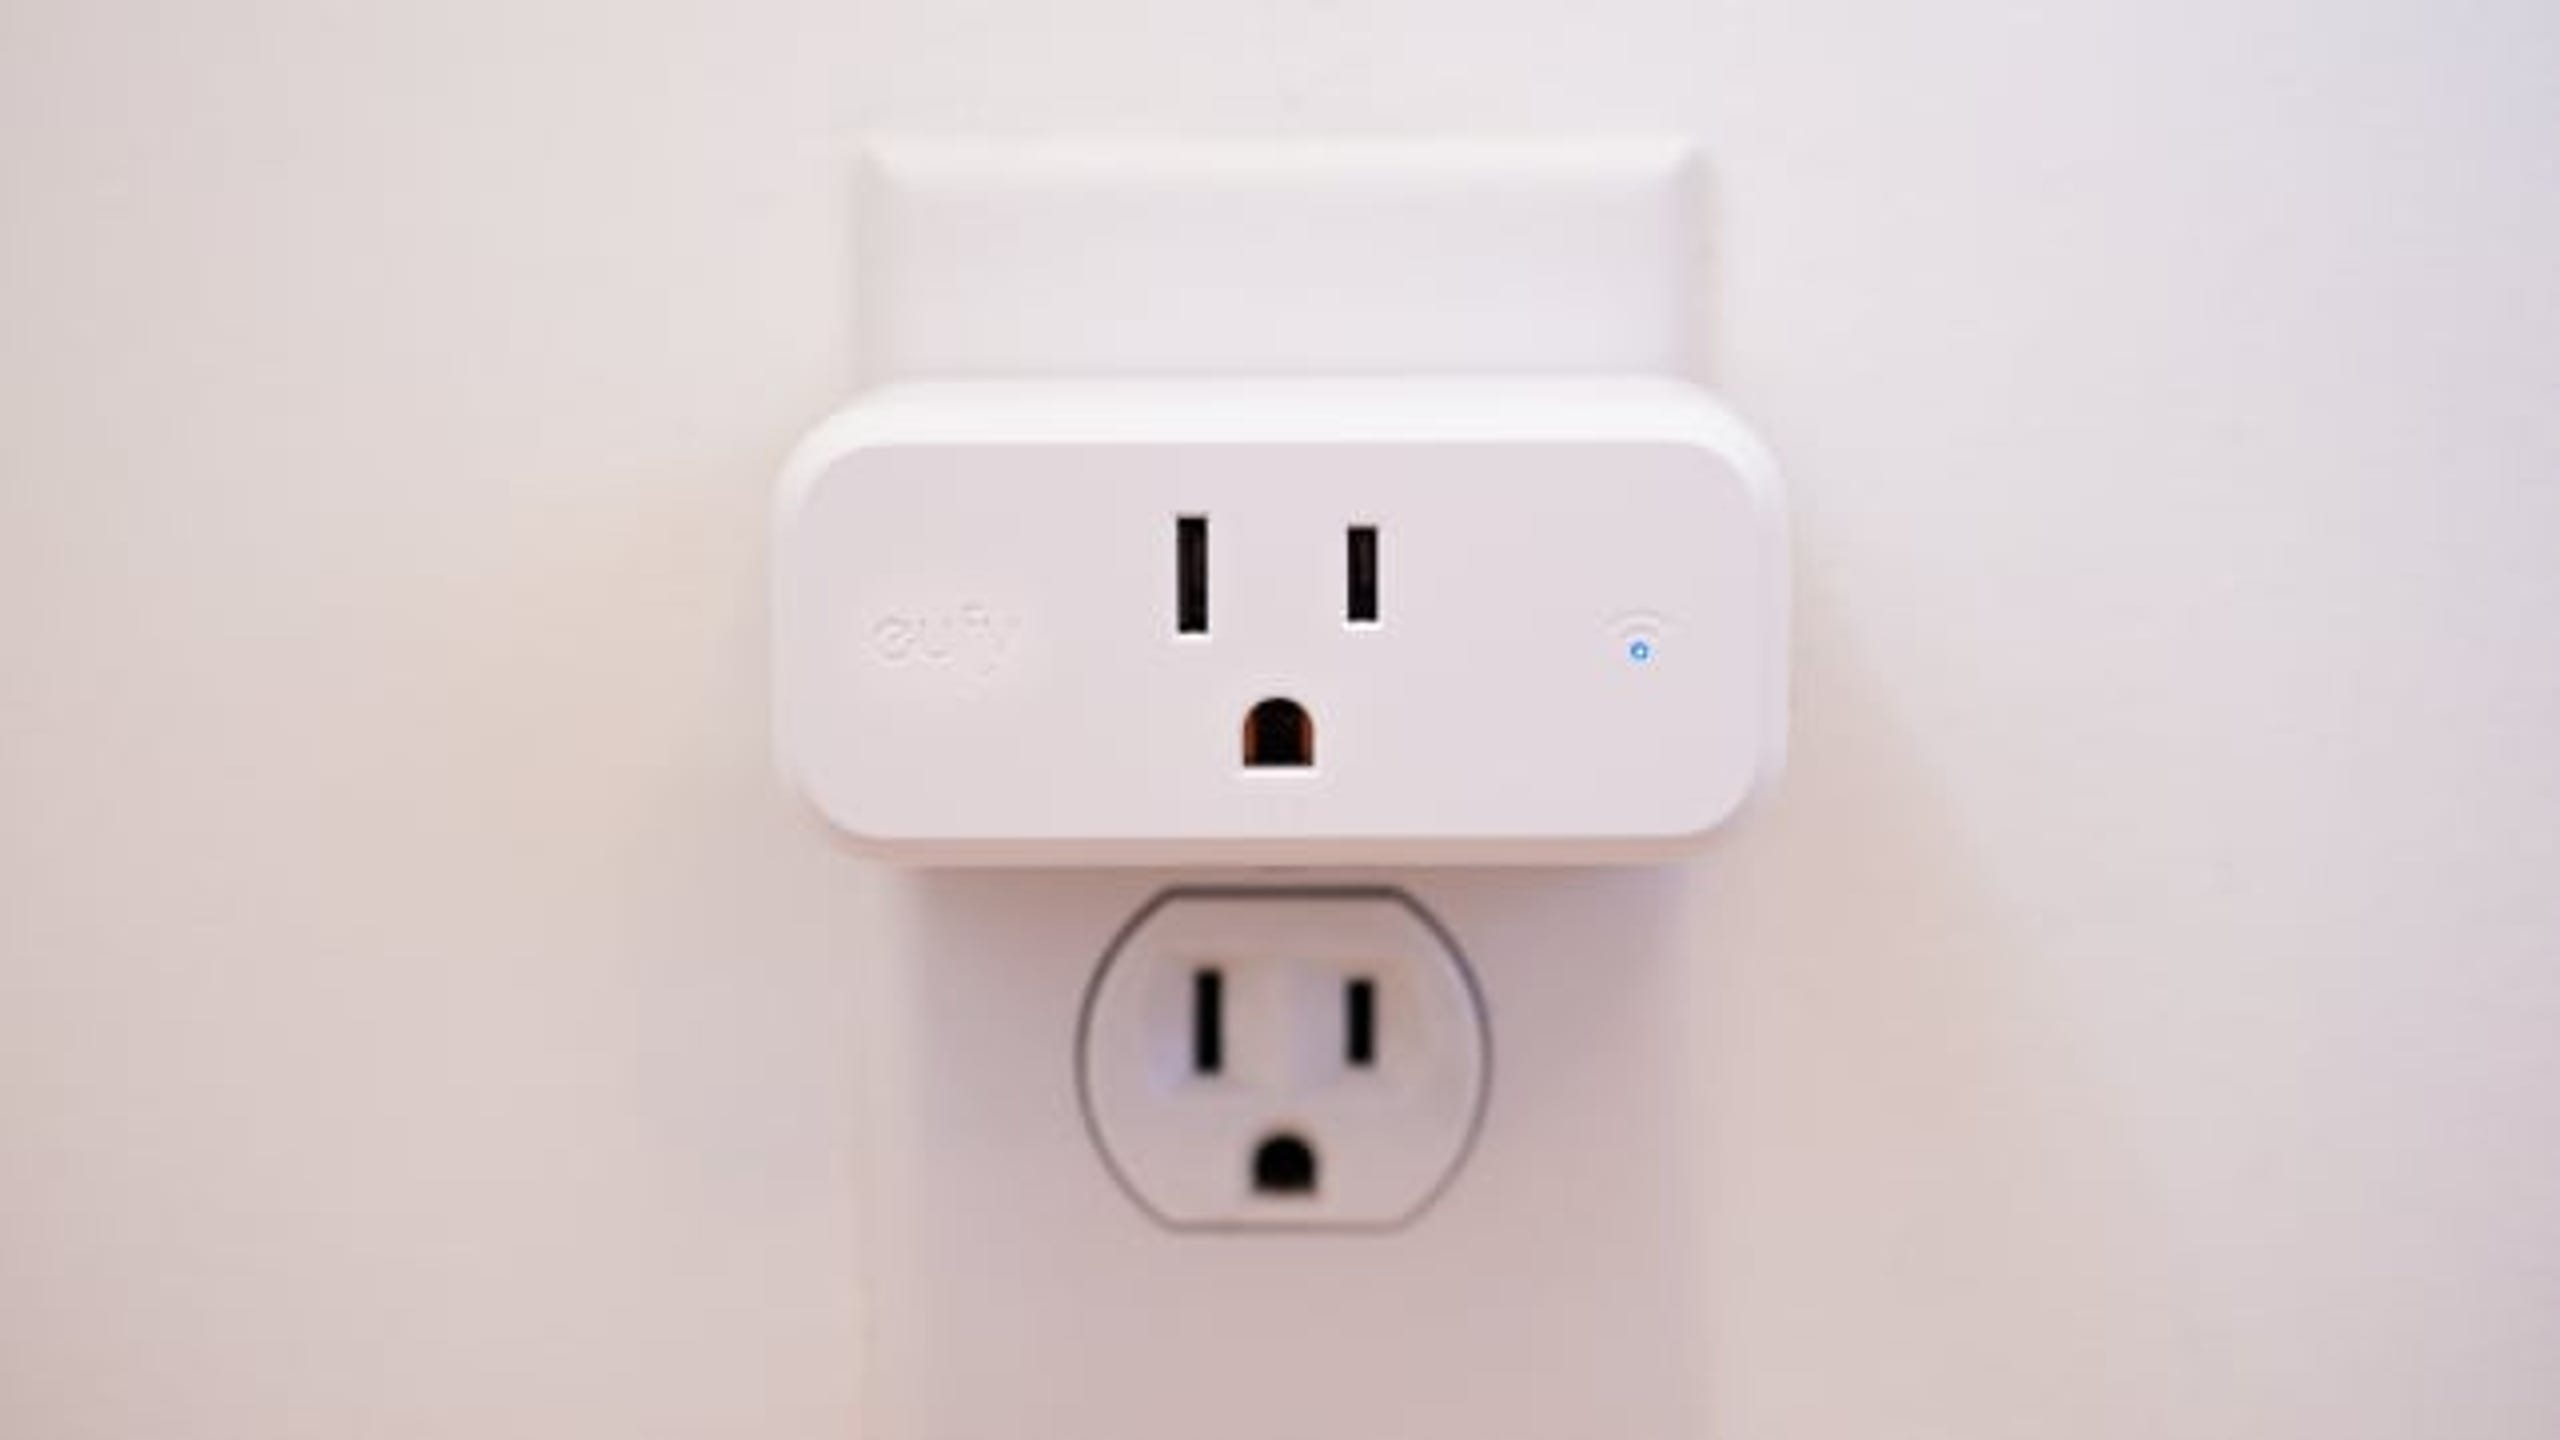 "Want the features of a smart outlet without making a huge investment? The Eufy smart Plug Mini is our favorite affordable option. (<a href=""https://www.amazon.com/eufy-Assistant-Schedules-Countdown-Monitoring/dp/B07177XC24/ref=as_li_ss_tl?psc=1&amp;SubscriptionId=AKIAJIYMMIJN7RU7KVJQ&amp;linkCode=ll1&amp;tag=usatgallery-20&amp;linkId=91975d45ac428622511c13c8efeac2ee&amp;language=en_US"">$22.99 on Amazon</a>)"